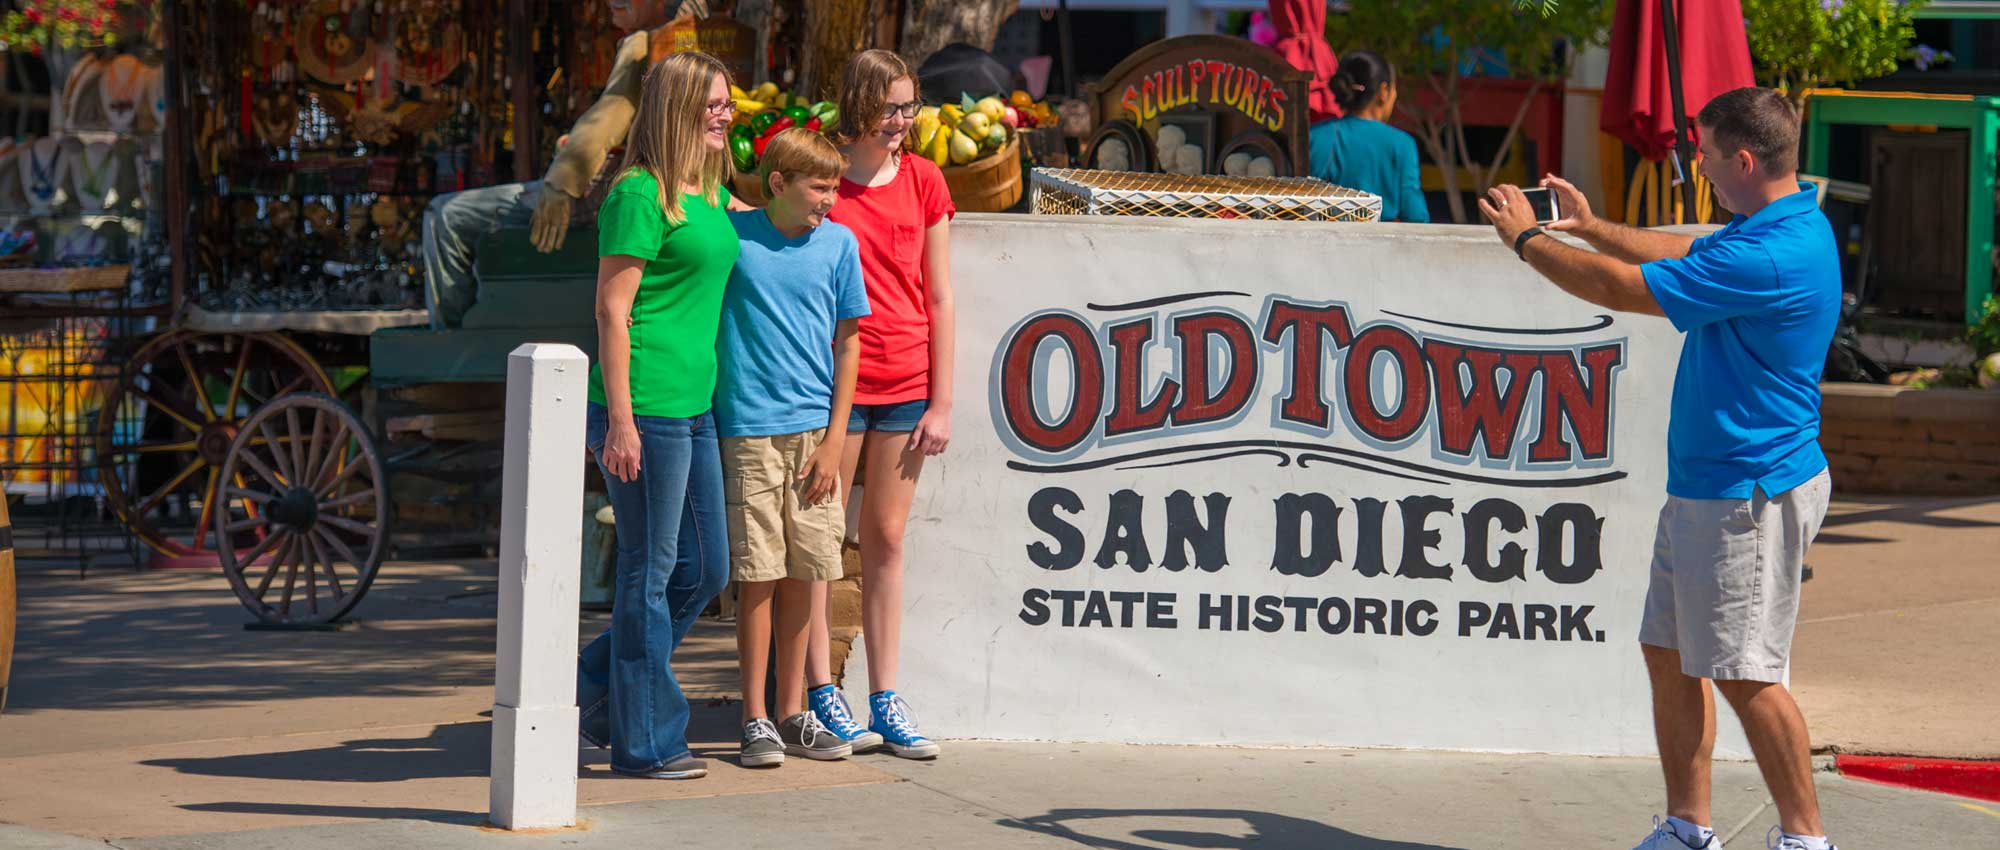 Image of people at Old Town San Diego Historic Park sign